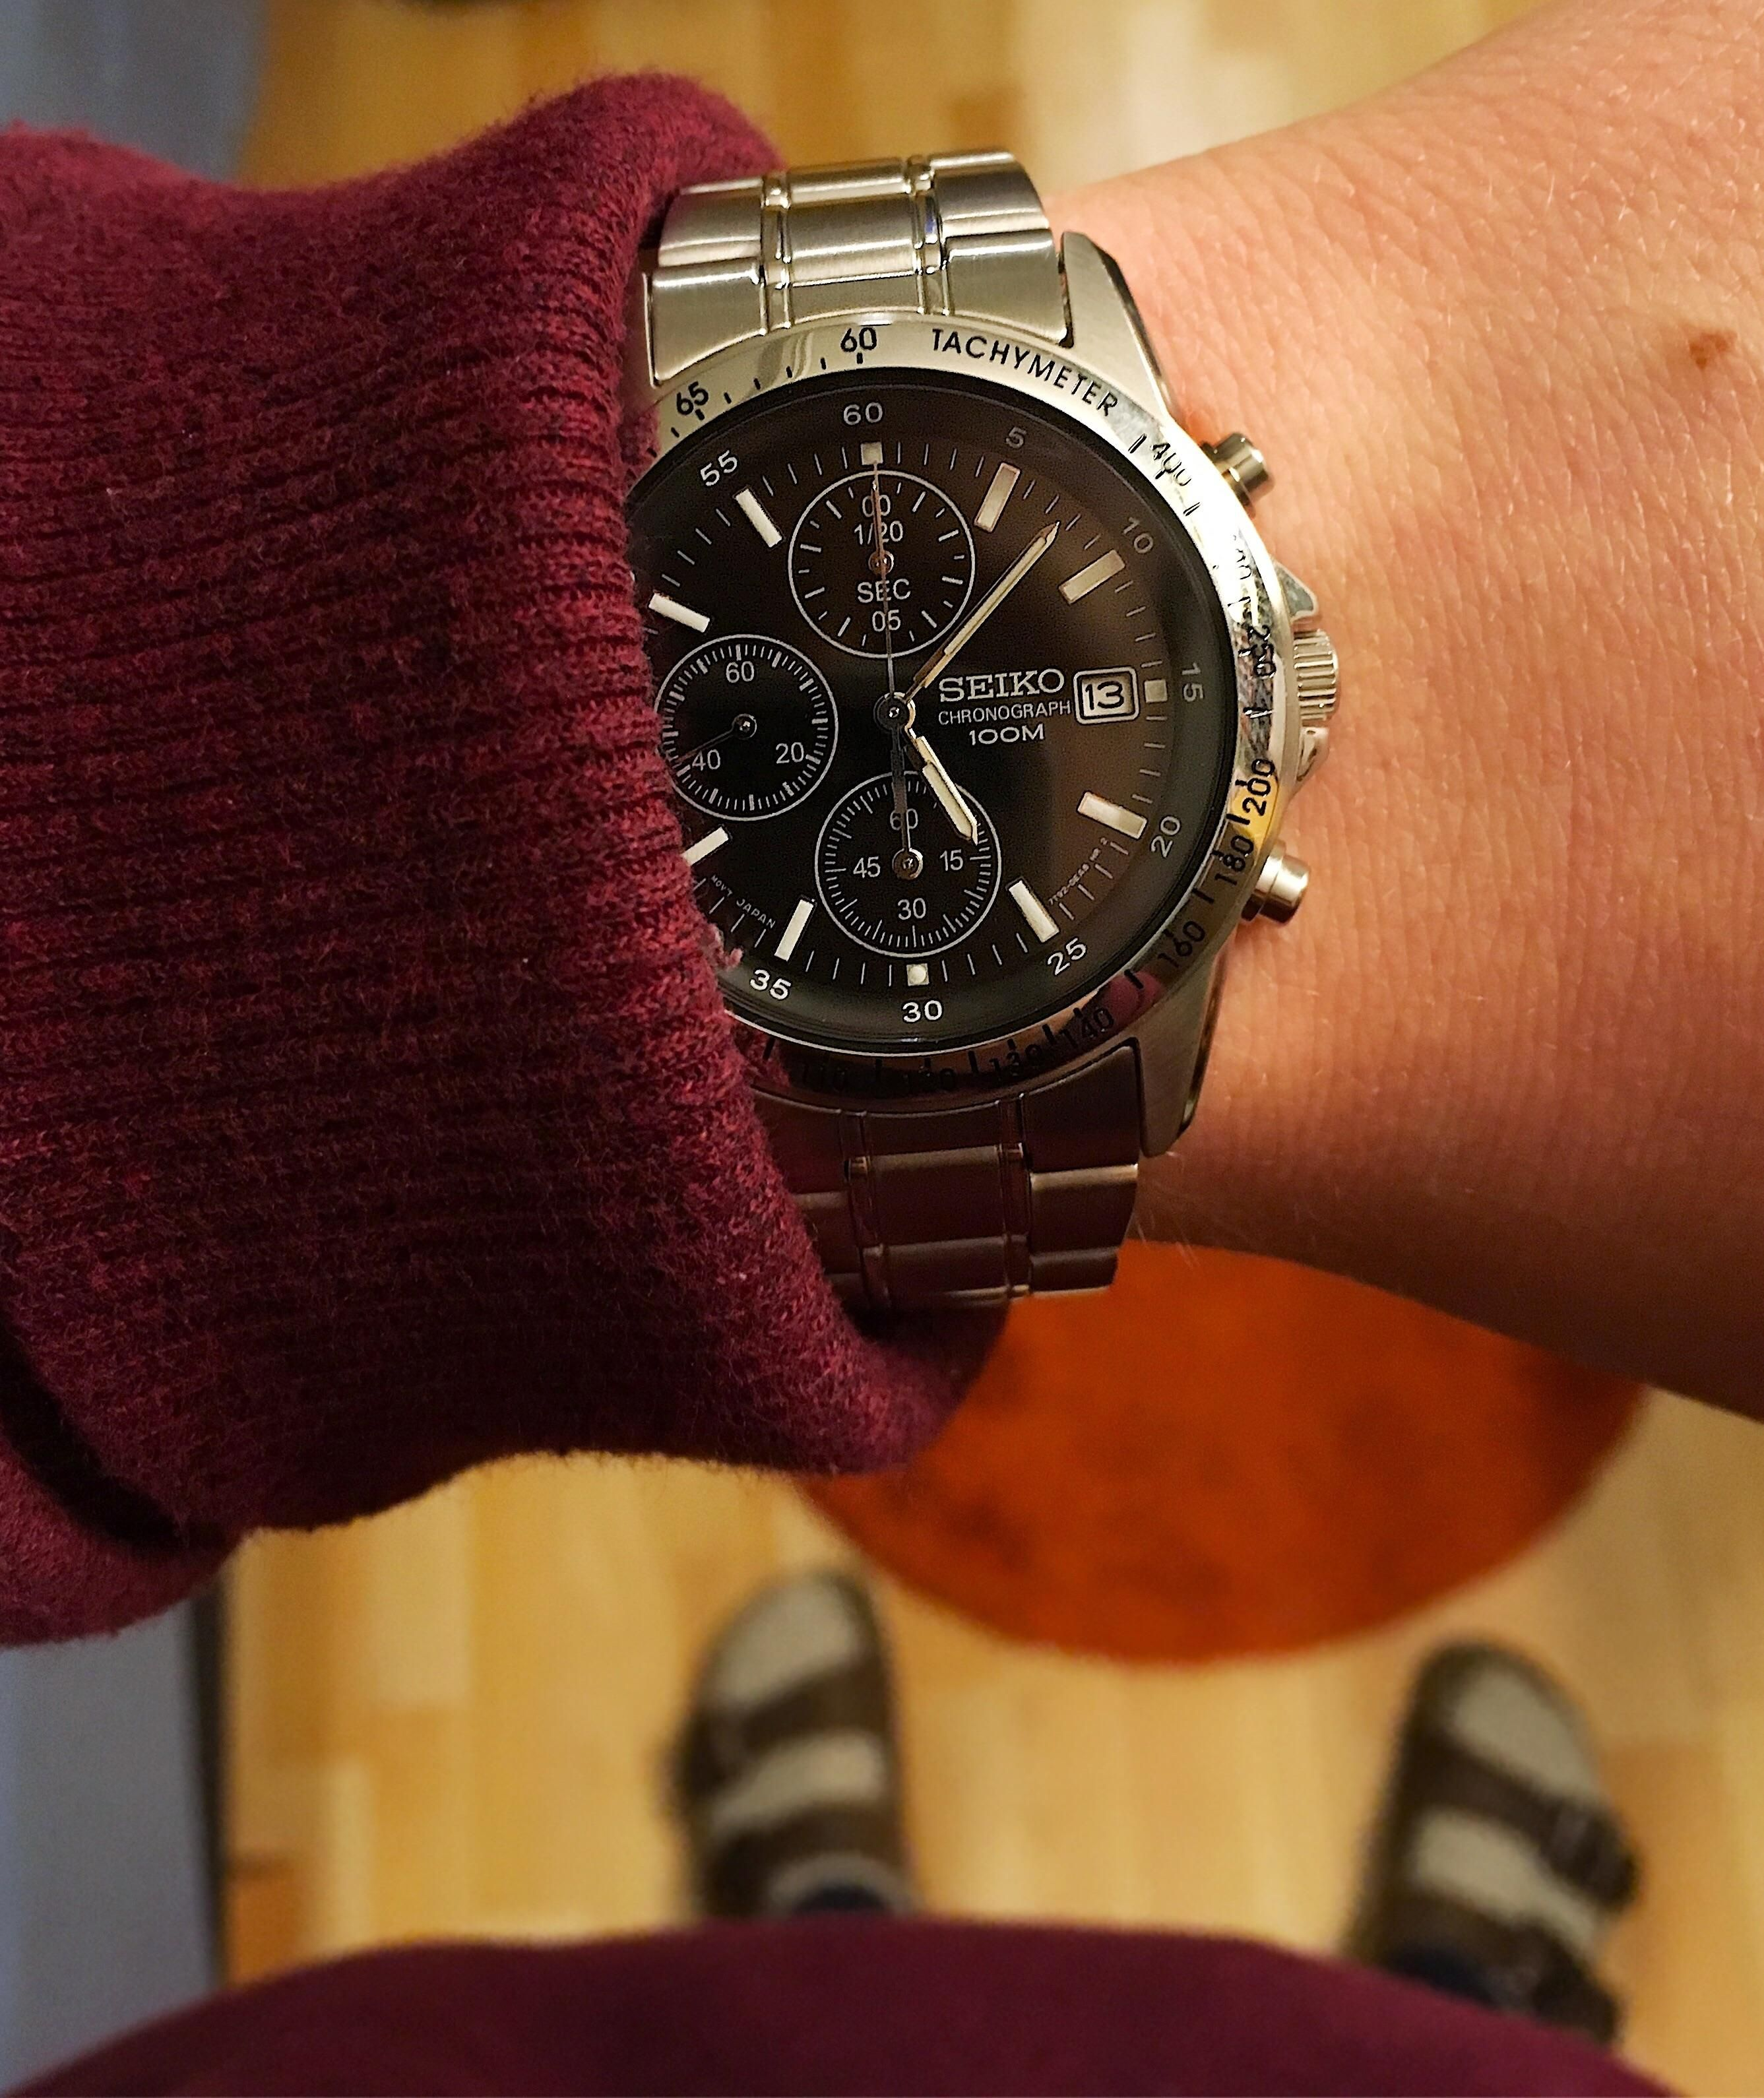 Seiko Men39s Chronograph 100m Sports Watch Ssb007p1 T Solar Blue Dial Stainless Steel Mens Ssc221 Silver Snd367 Got My First Today Http Ifttt 2yy0t04